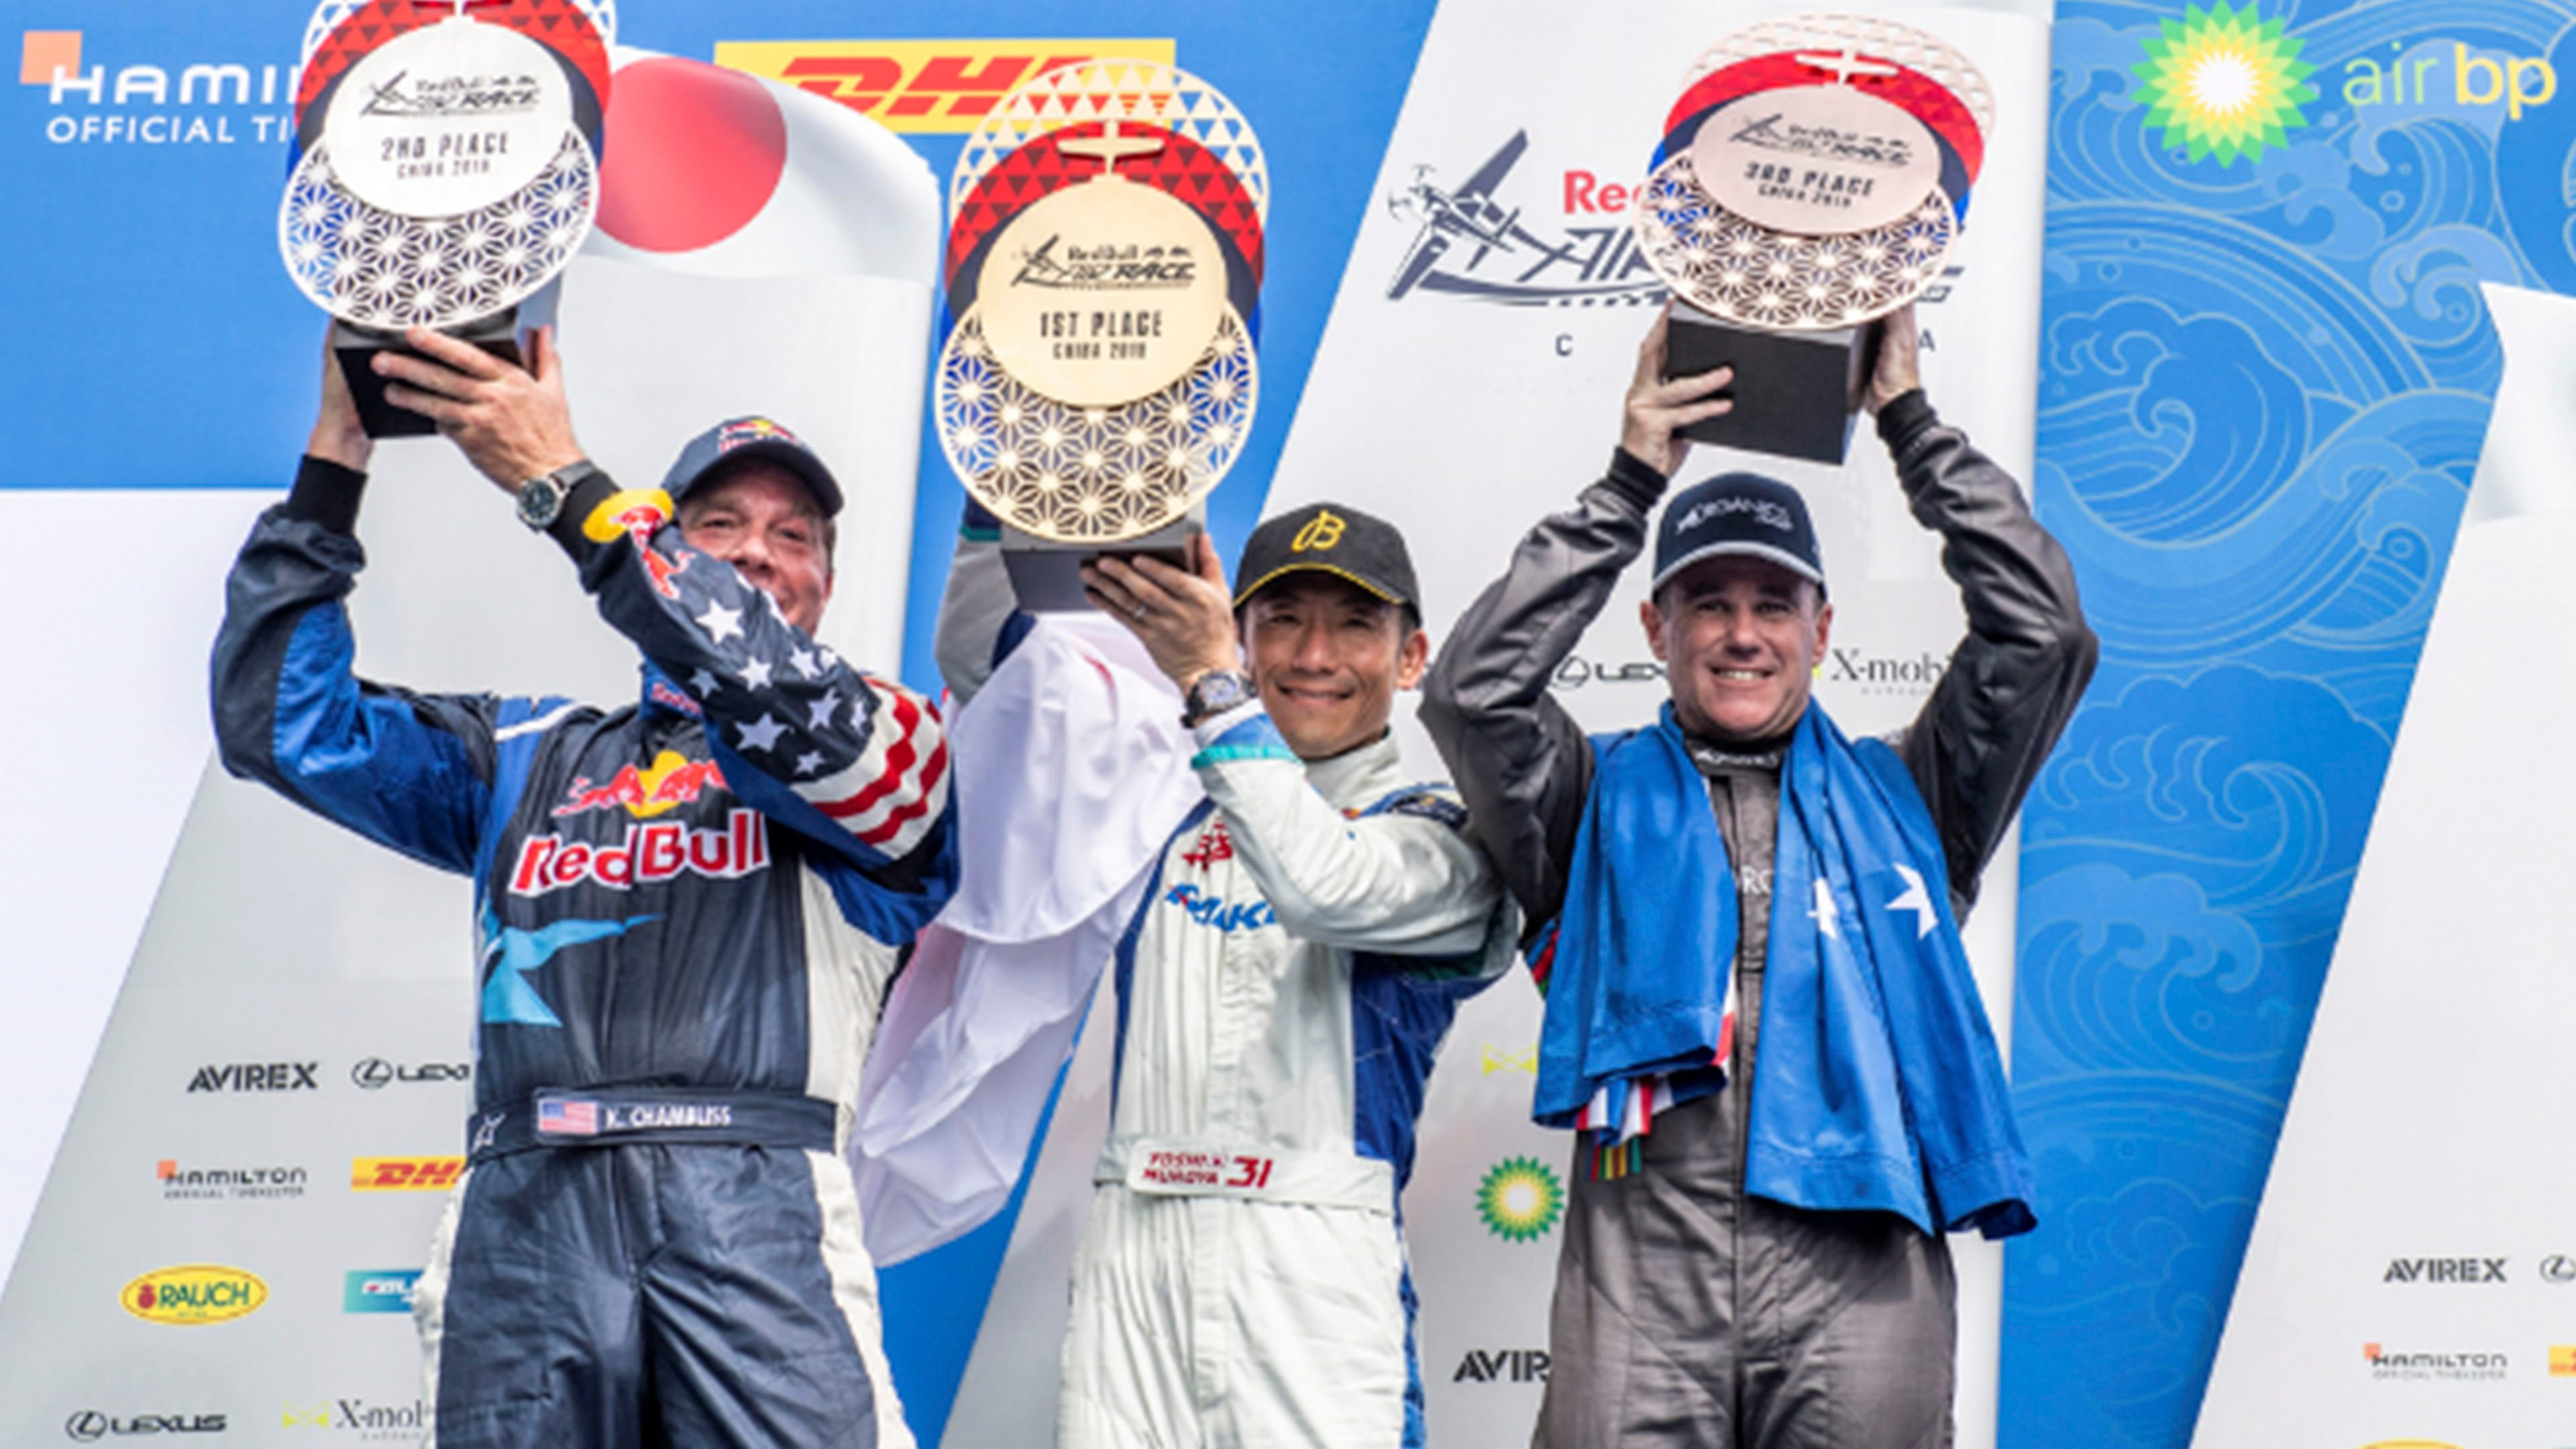 Red Bull Air Race podium with three pilots holding trophies